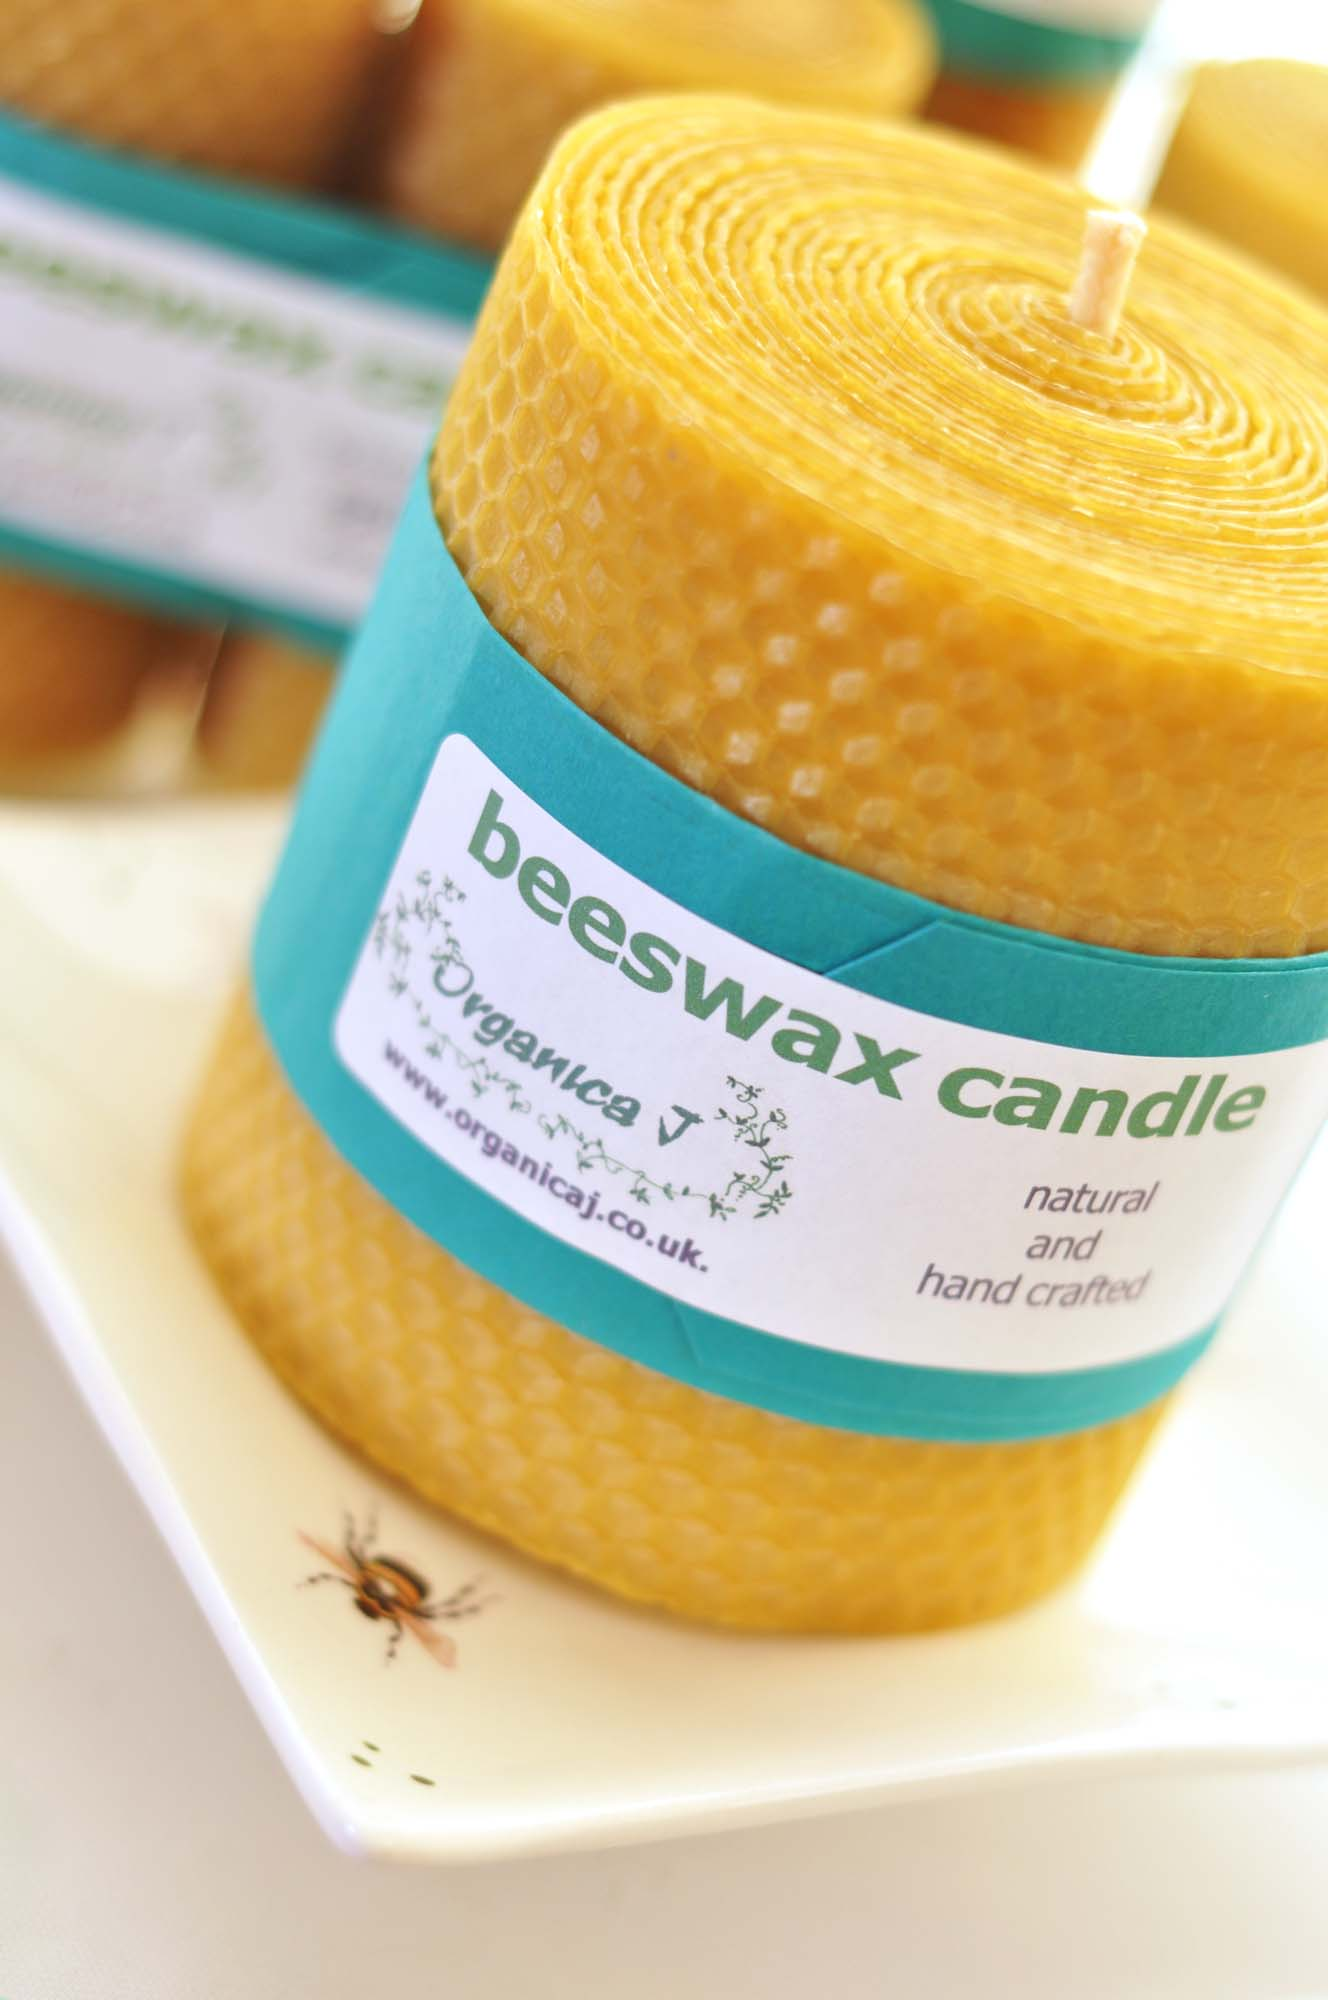 Natural hand crafted beeswax candles